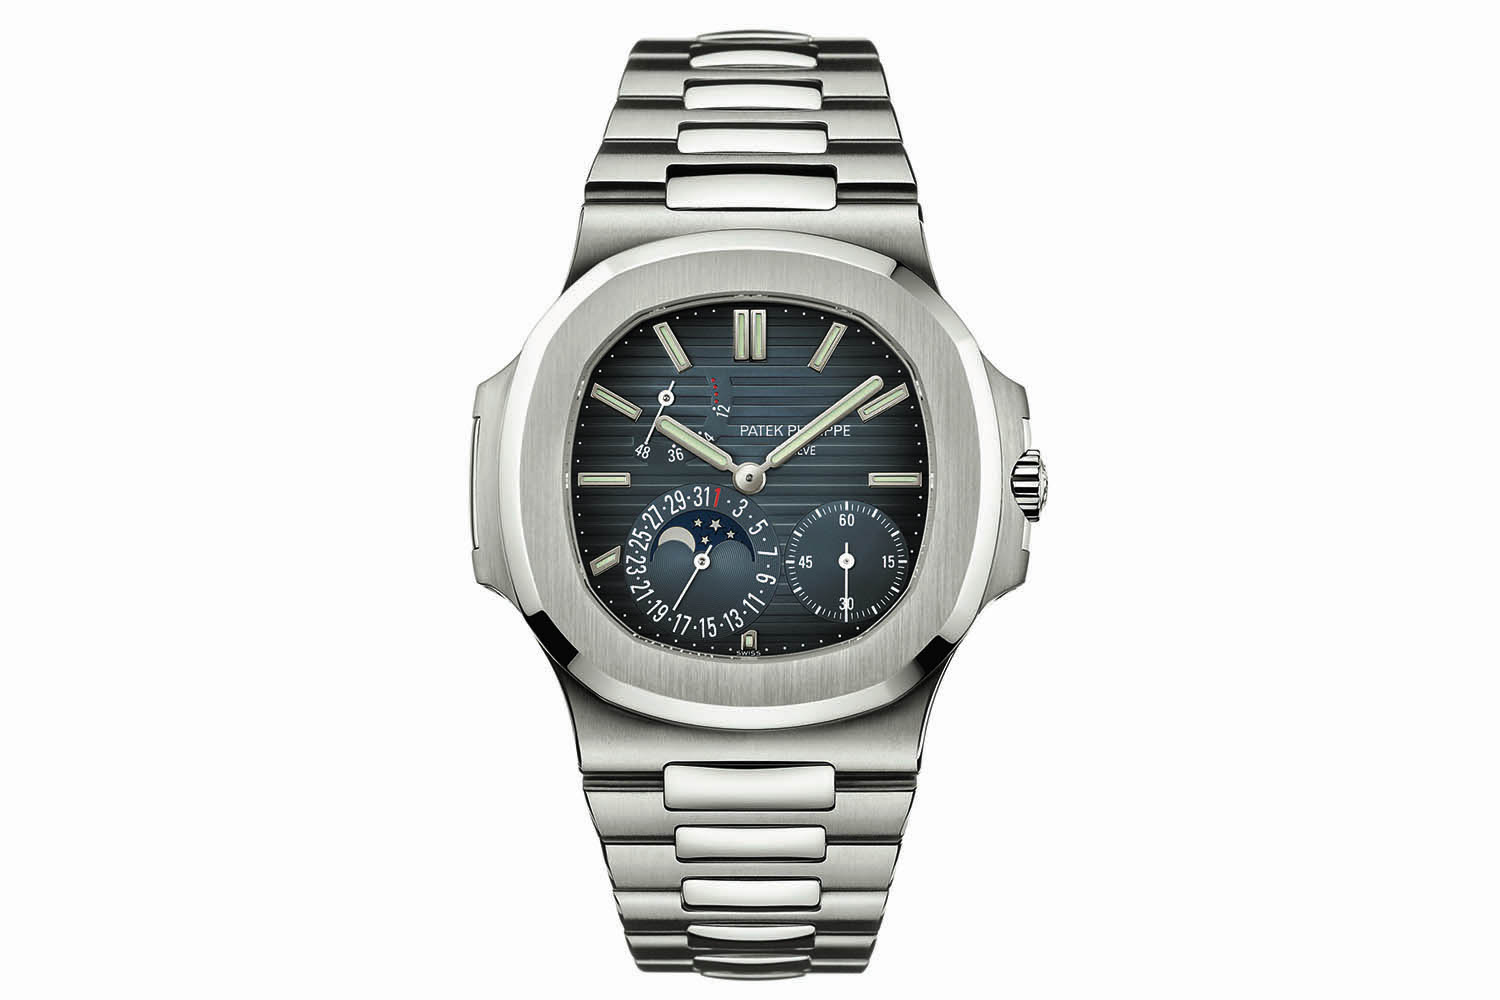 Patek-Nautilus-5712-1A-moon-and-date